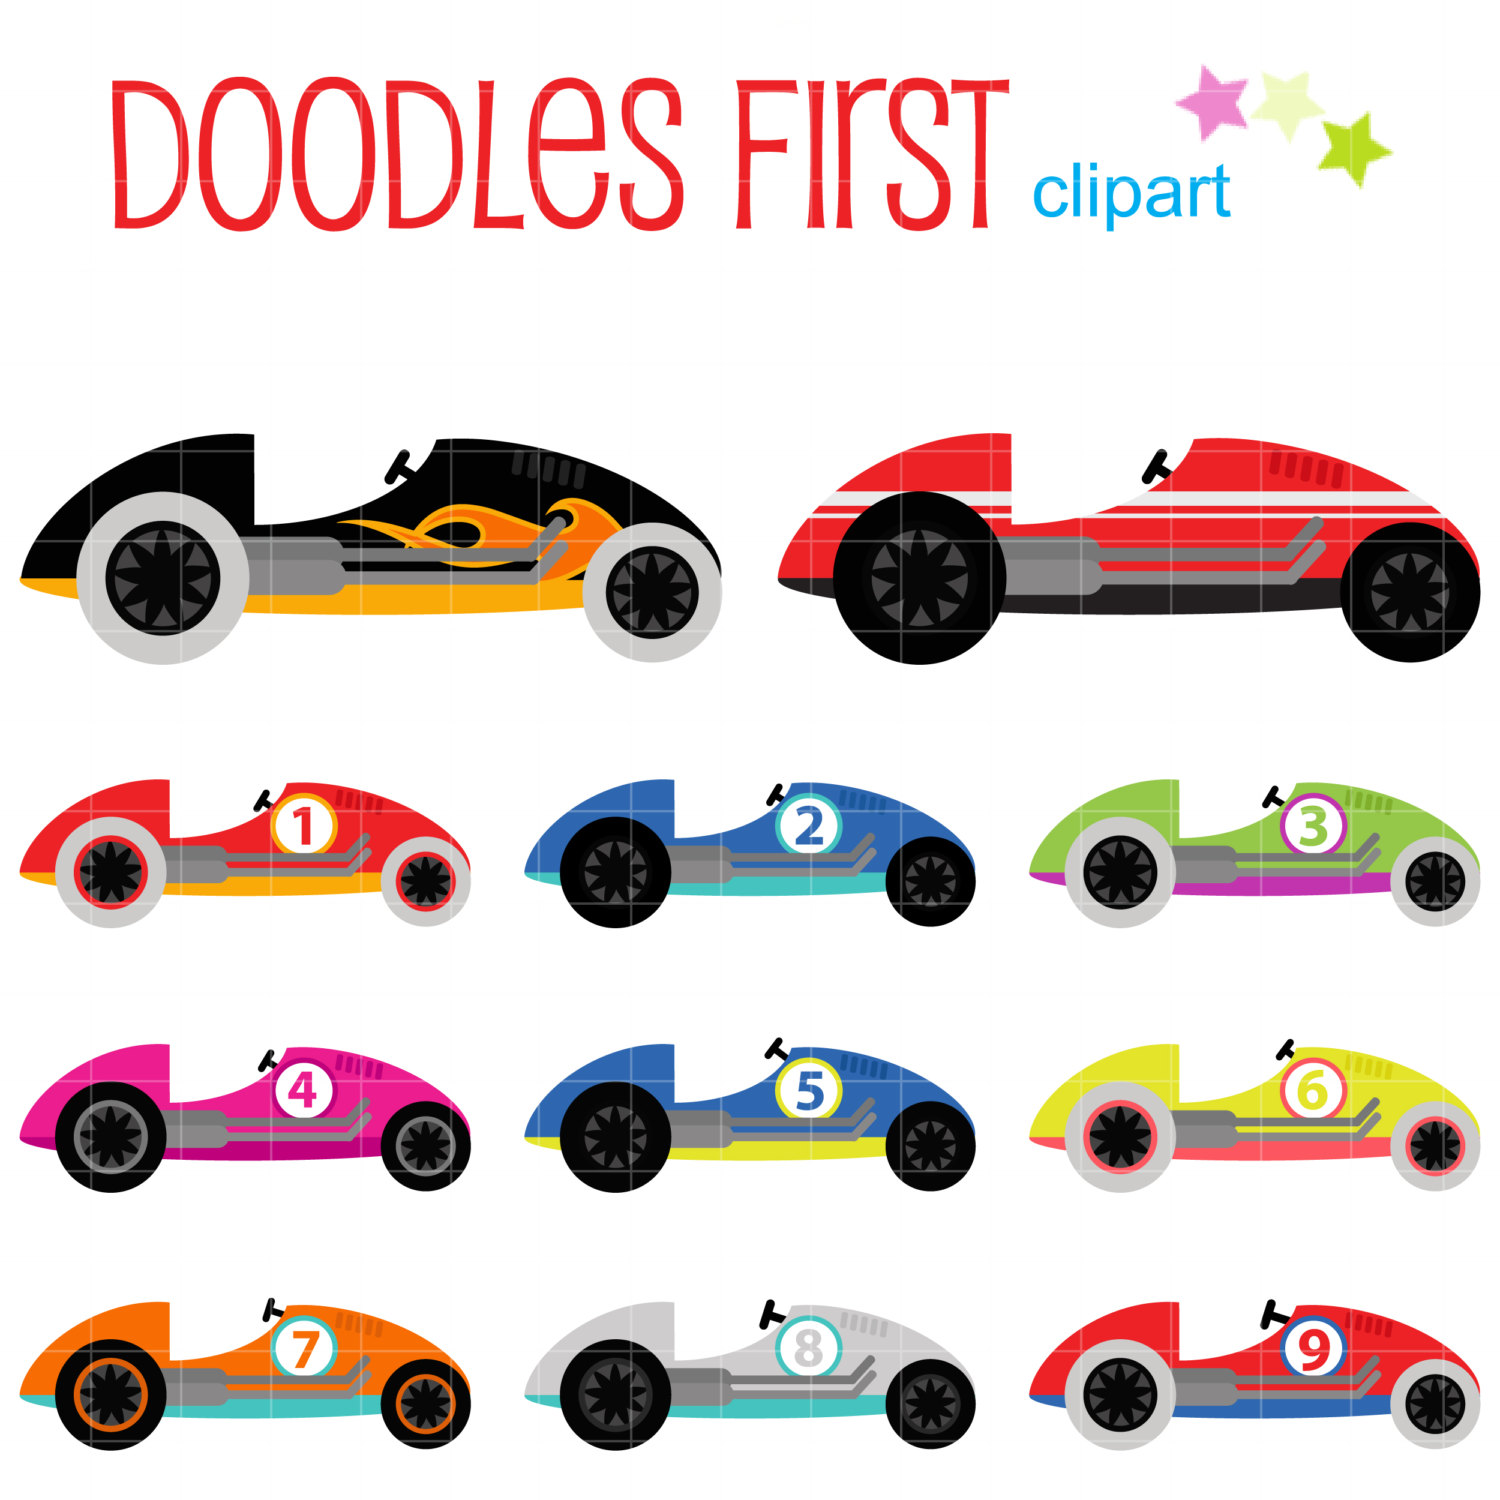 race car clipart at getdrawings com free for personal use race car rh getdrawings com race car clipart free download race car flags clipart free